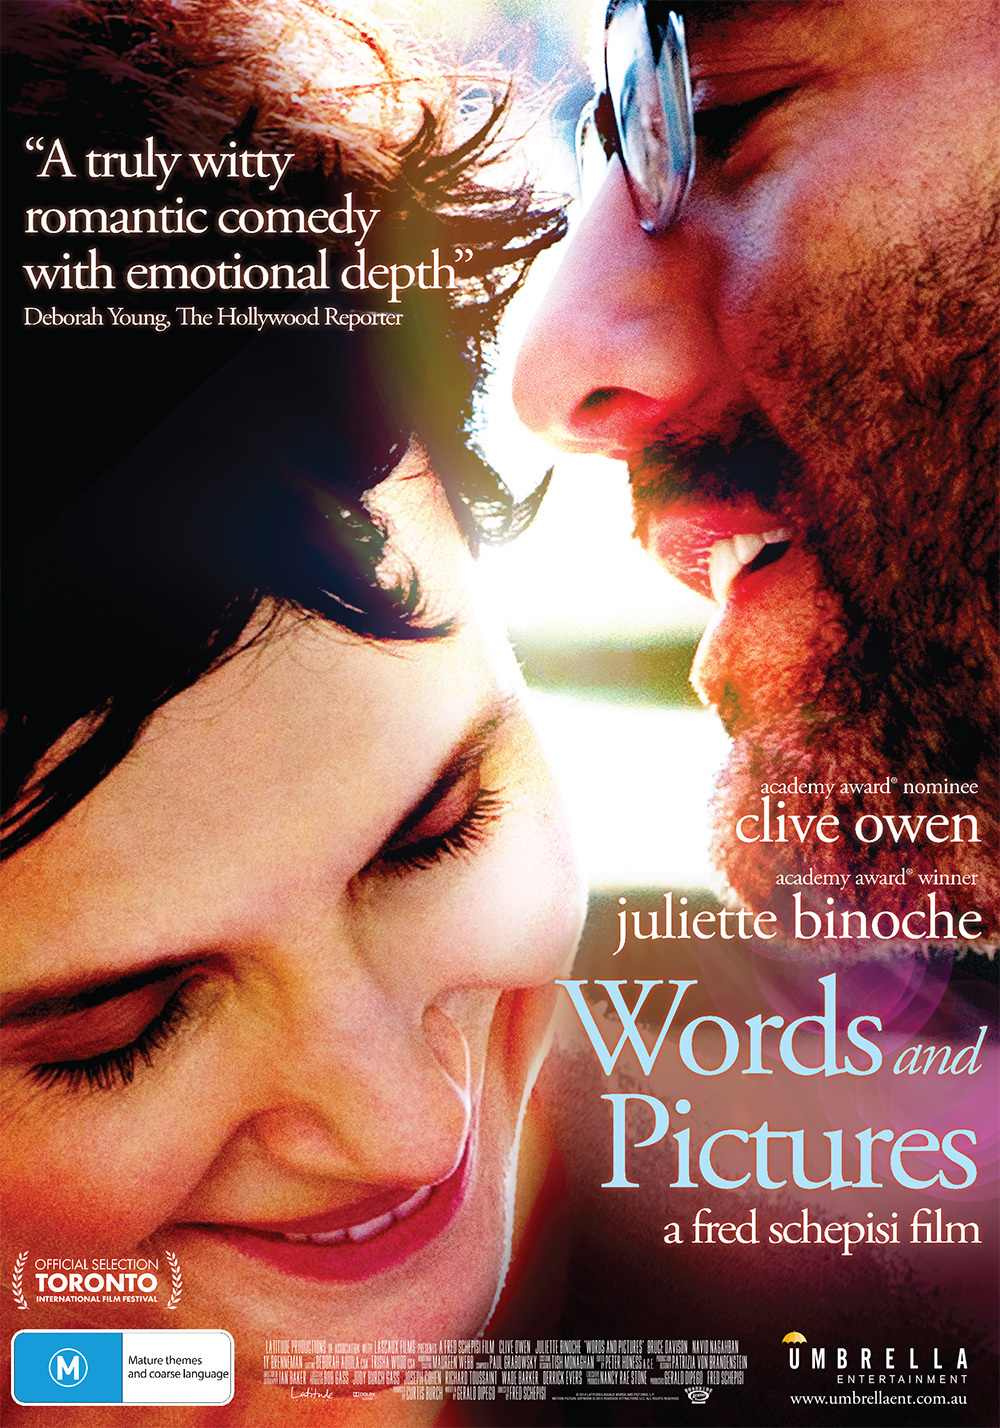 Pictures and words trailer Cached